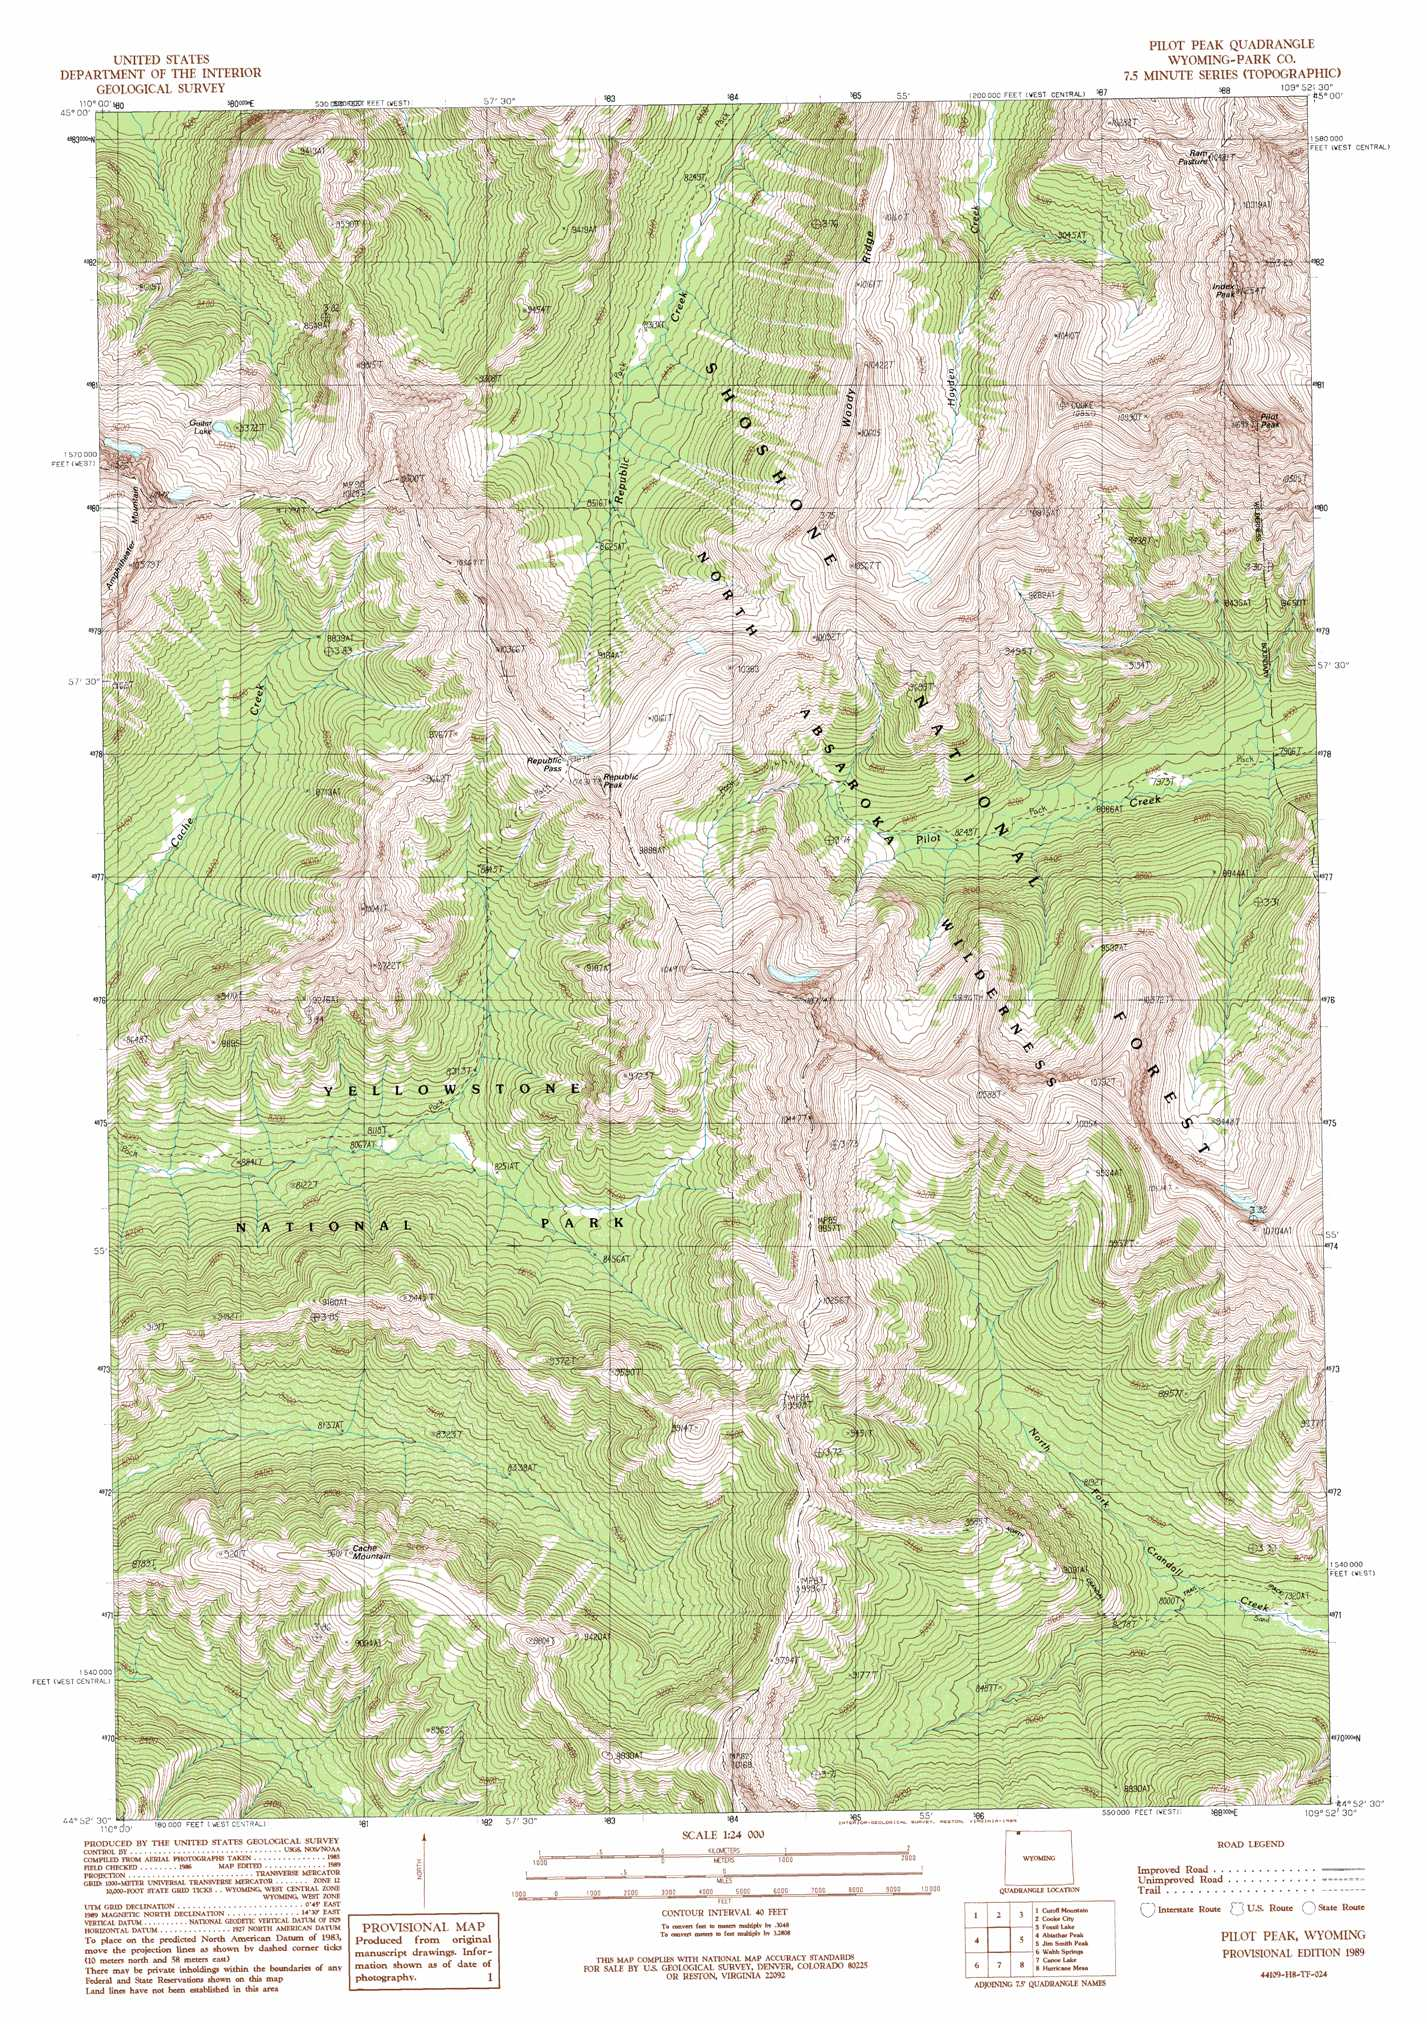 Pilot Peak Topographic Map WY  USGS Topo Quad 44109h8